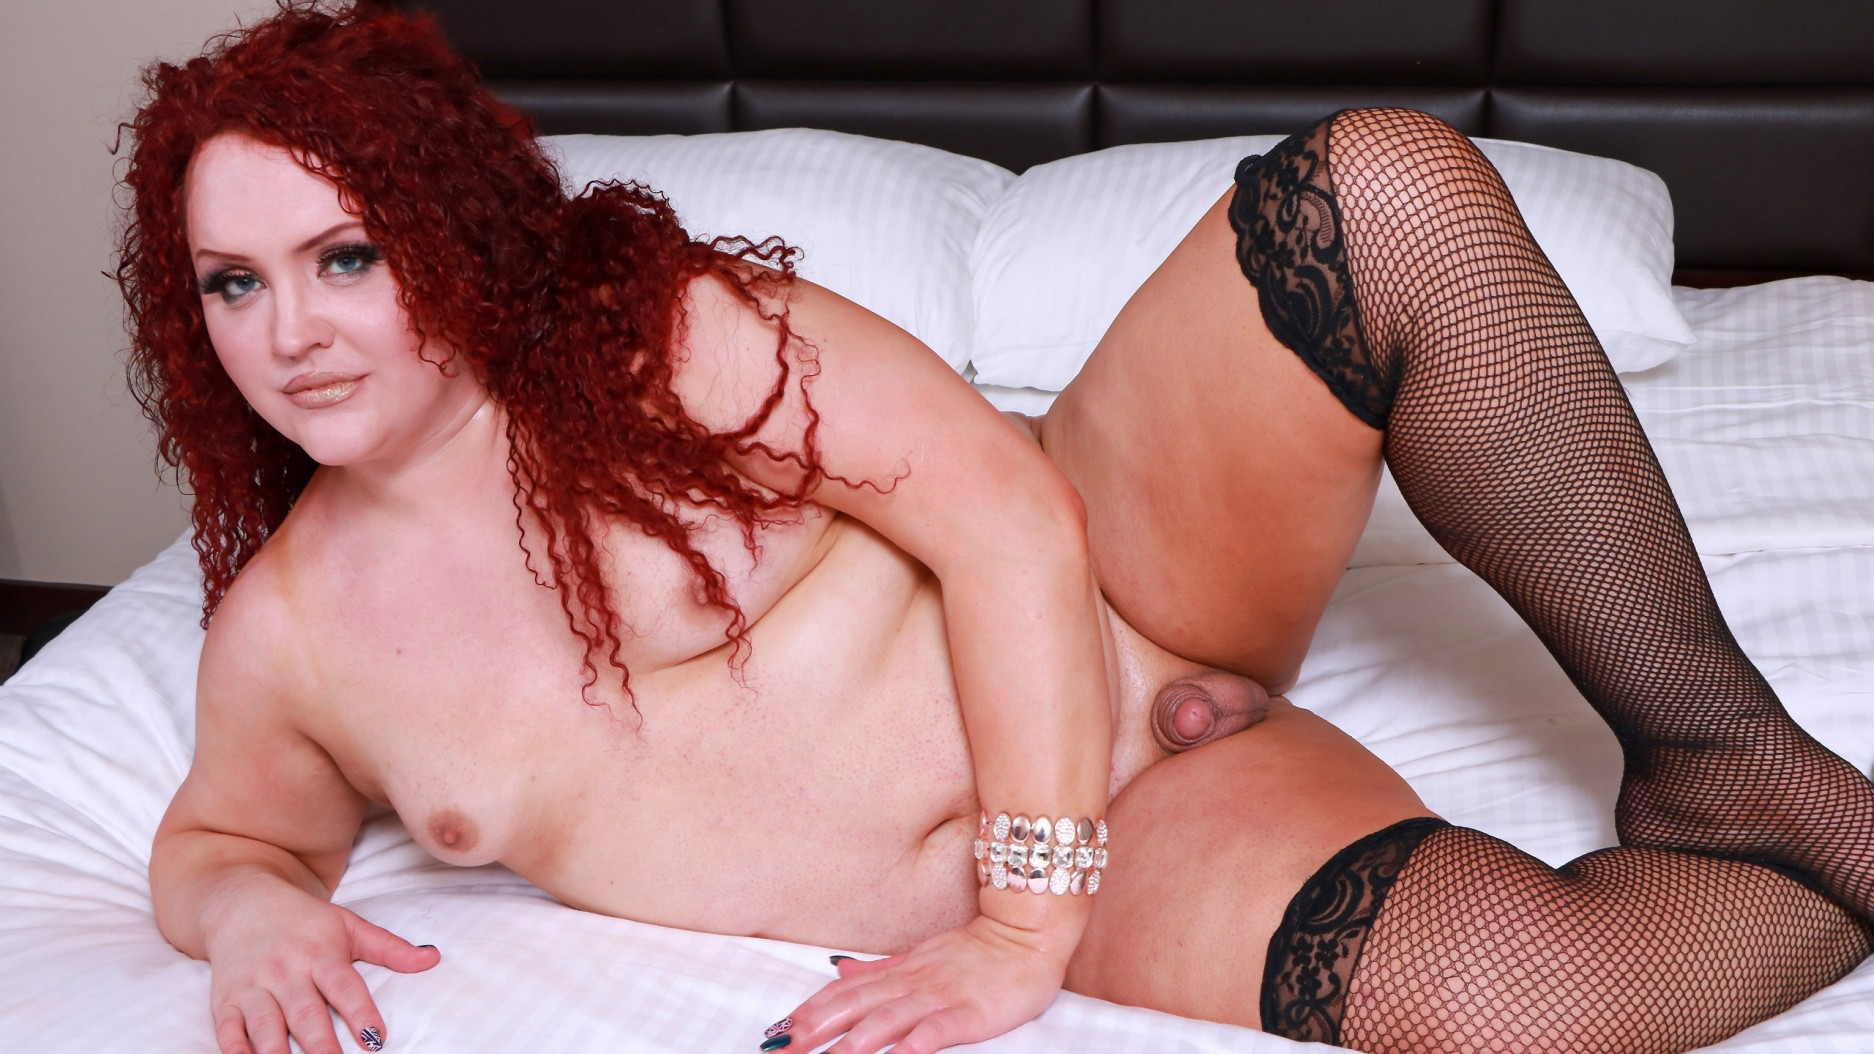 ShemaleYum Curvy Redhead Nathalie Presley! Added  18th May 2017 Tranny XXX Siterip PORN RIP